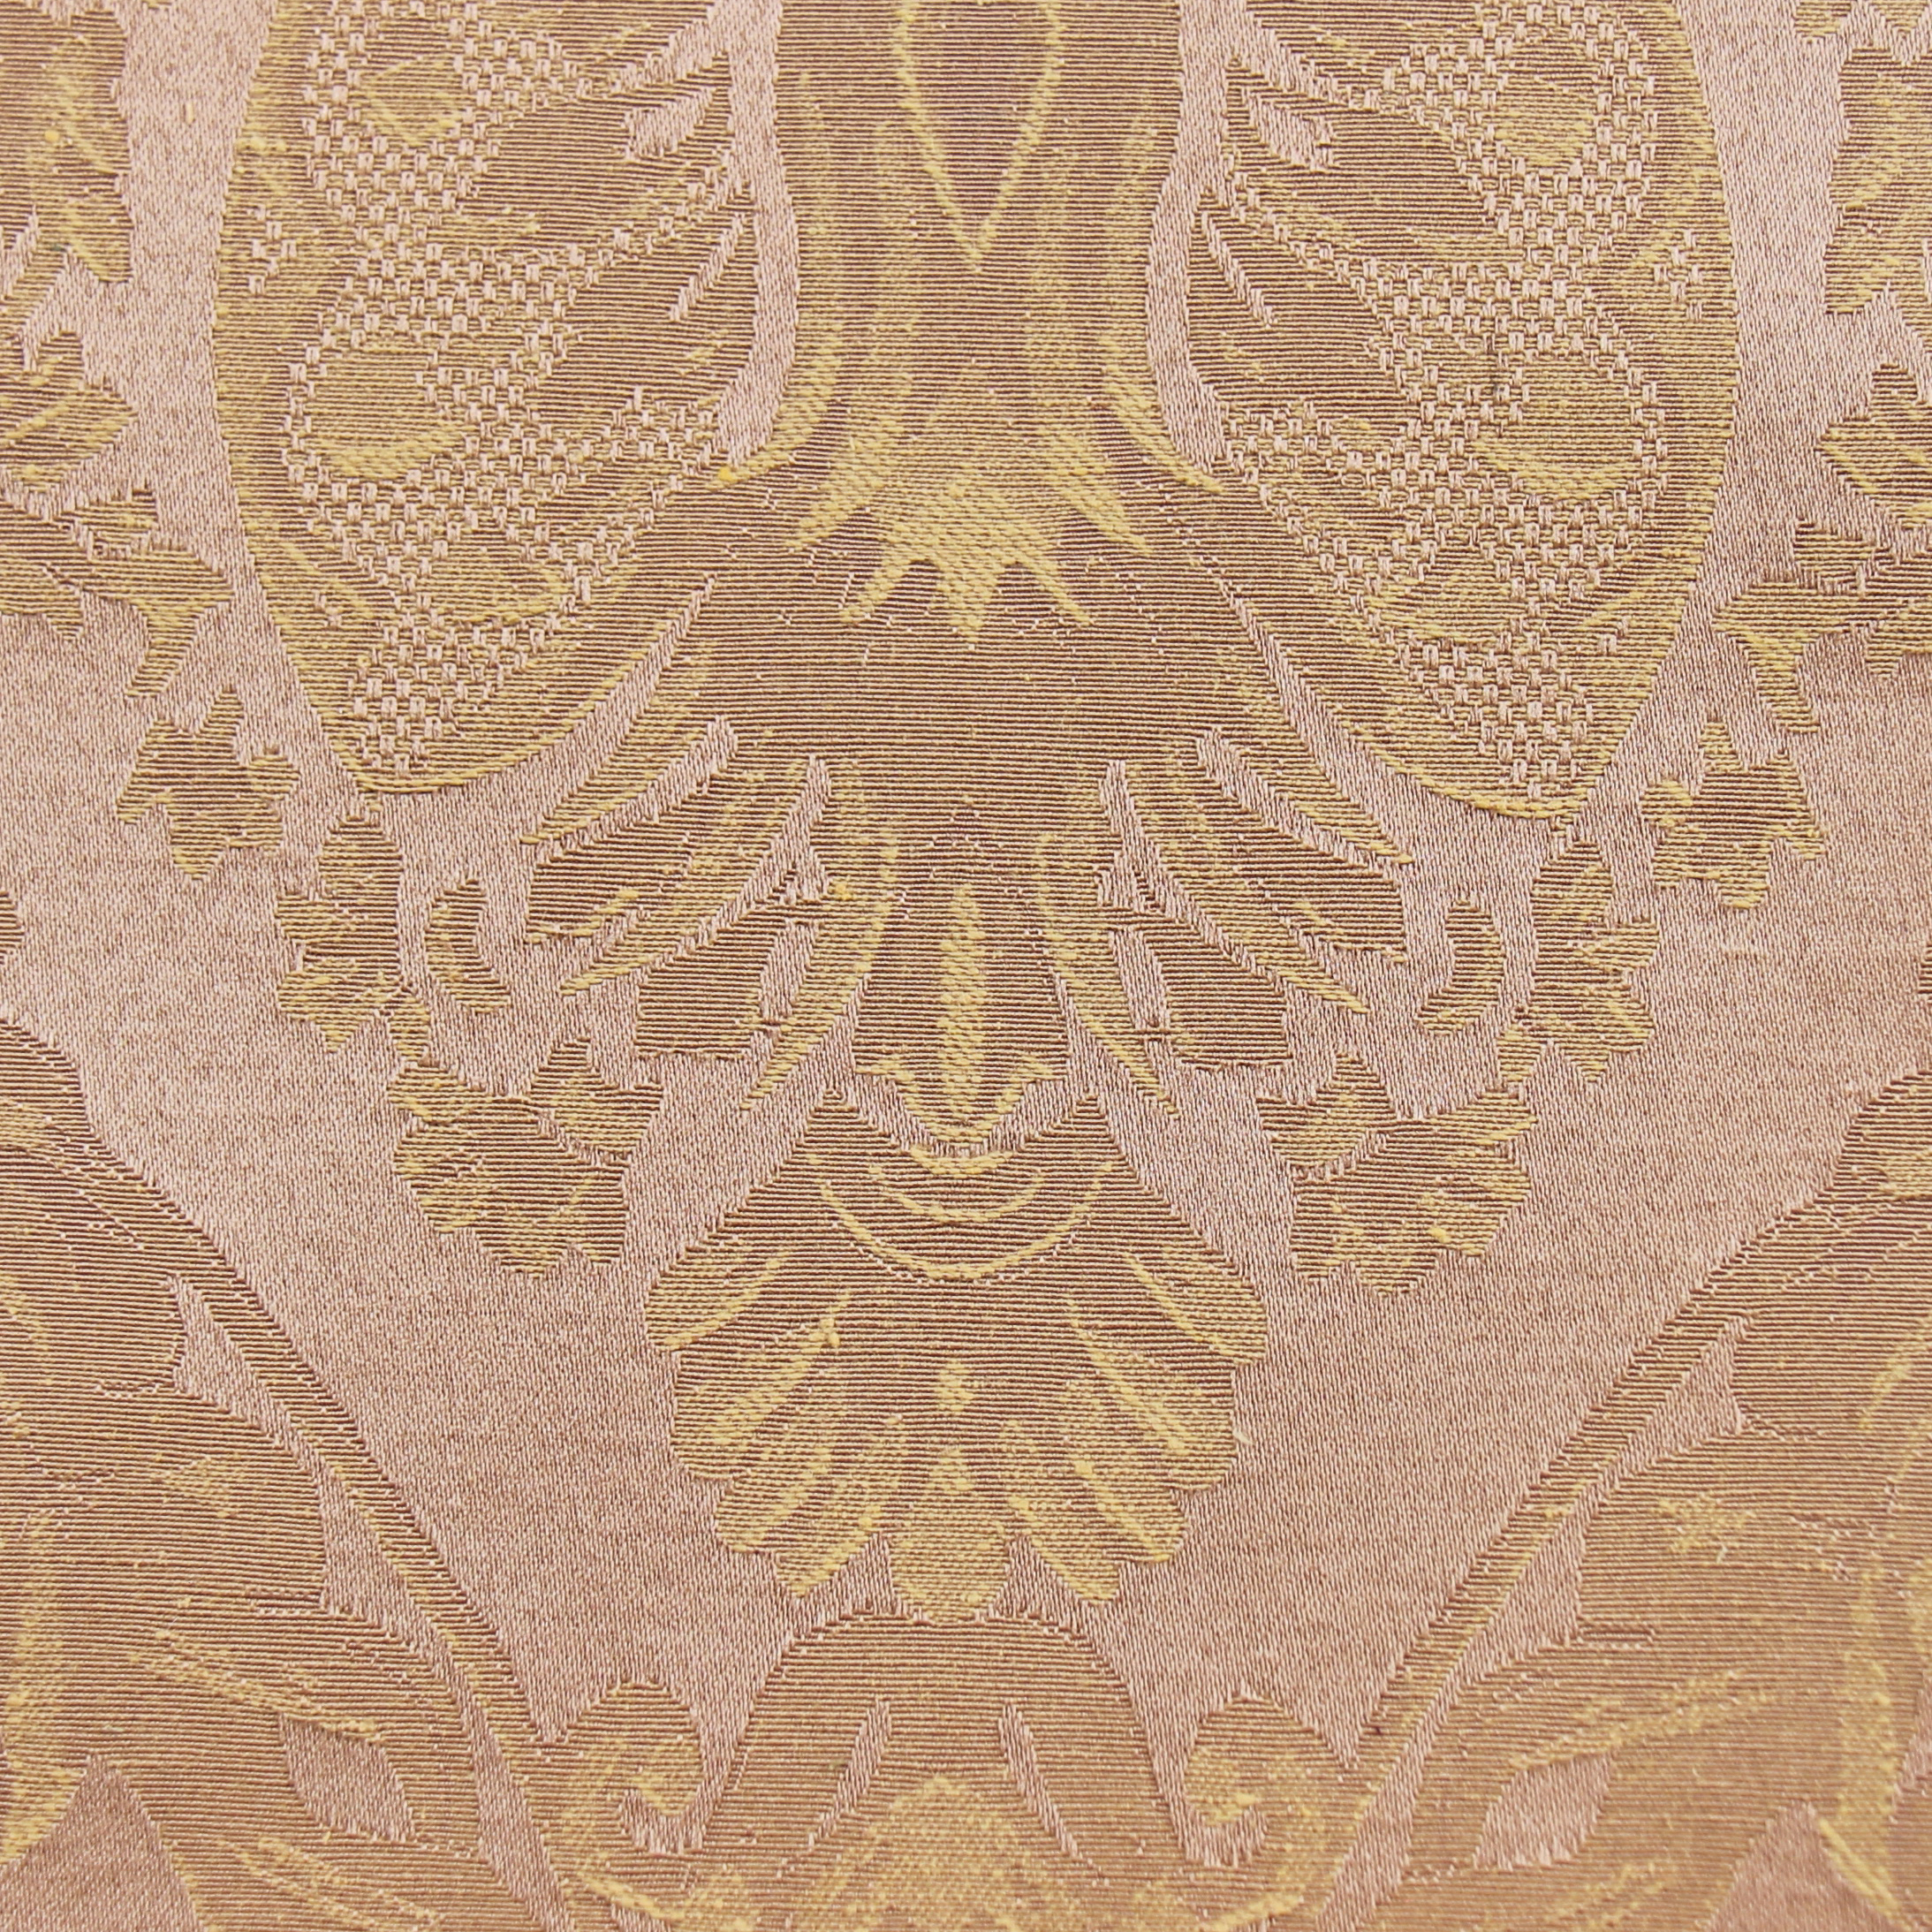 NO 42-45 RS X1 Plus NO 19 Fabric Upholstery Sample